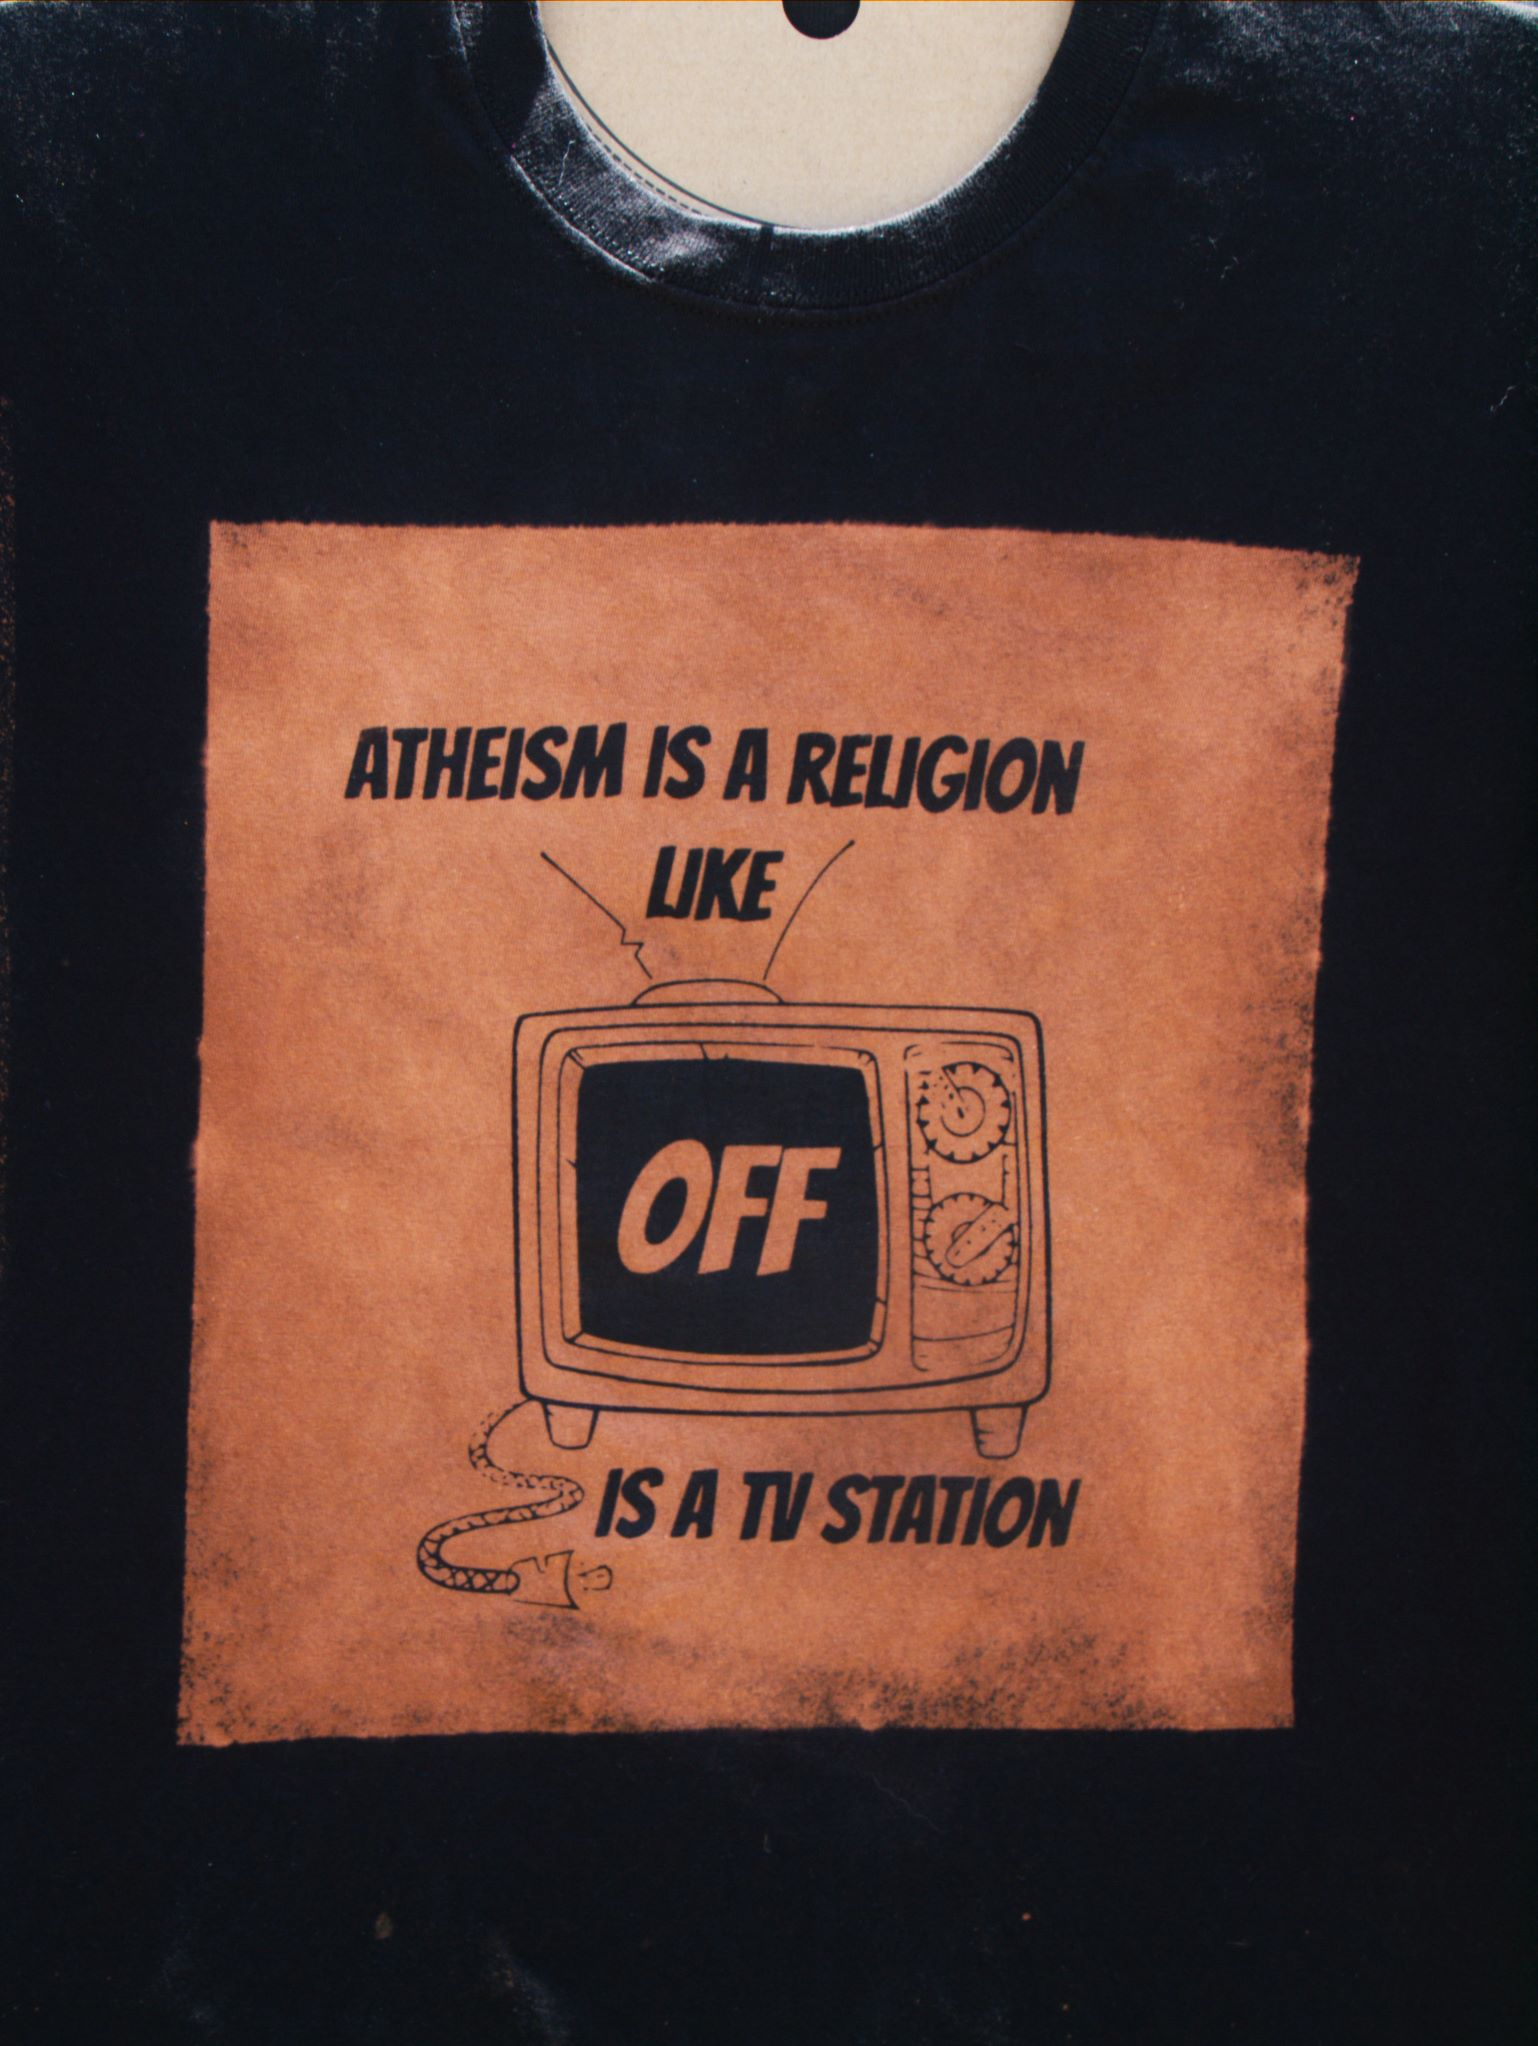 Atheism is a religion like off is a tv station discharge ink tee shirt design